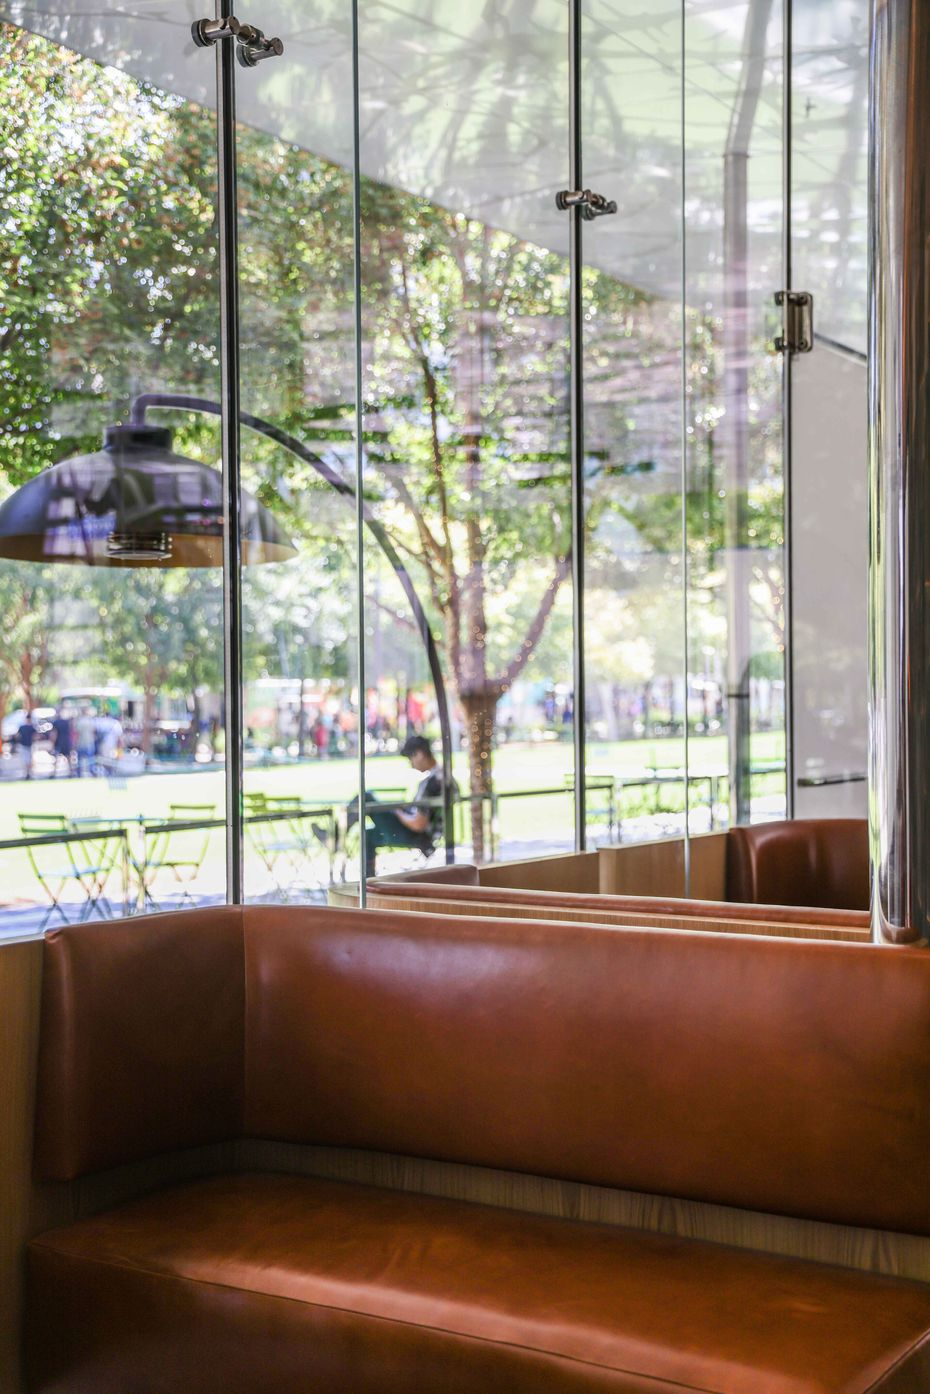 When Mi Cocina opens Oct. 18, 2021, it'll sell food and alcohol that can be taken to-go, for picnics in Klyde Warren Park.